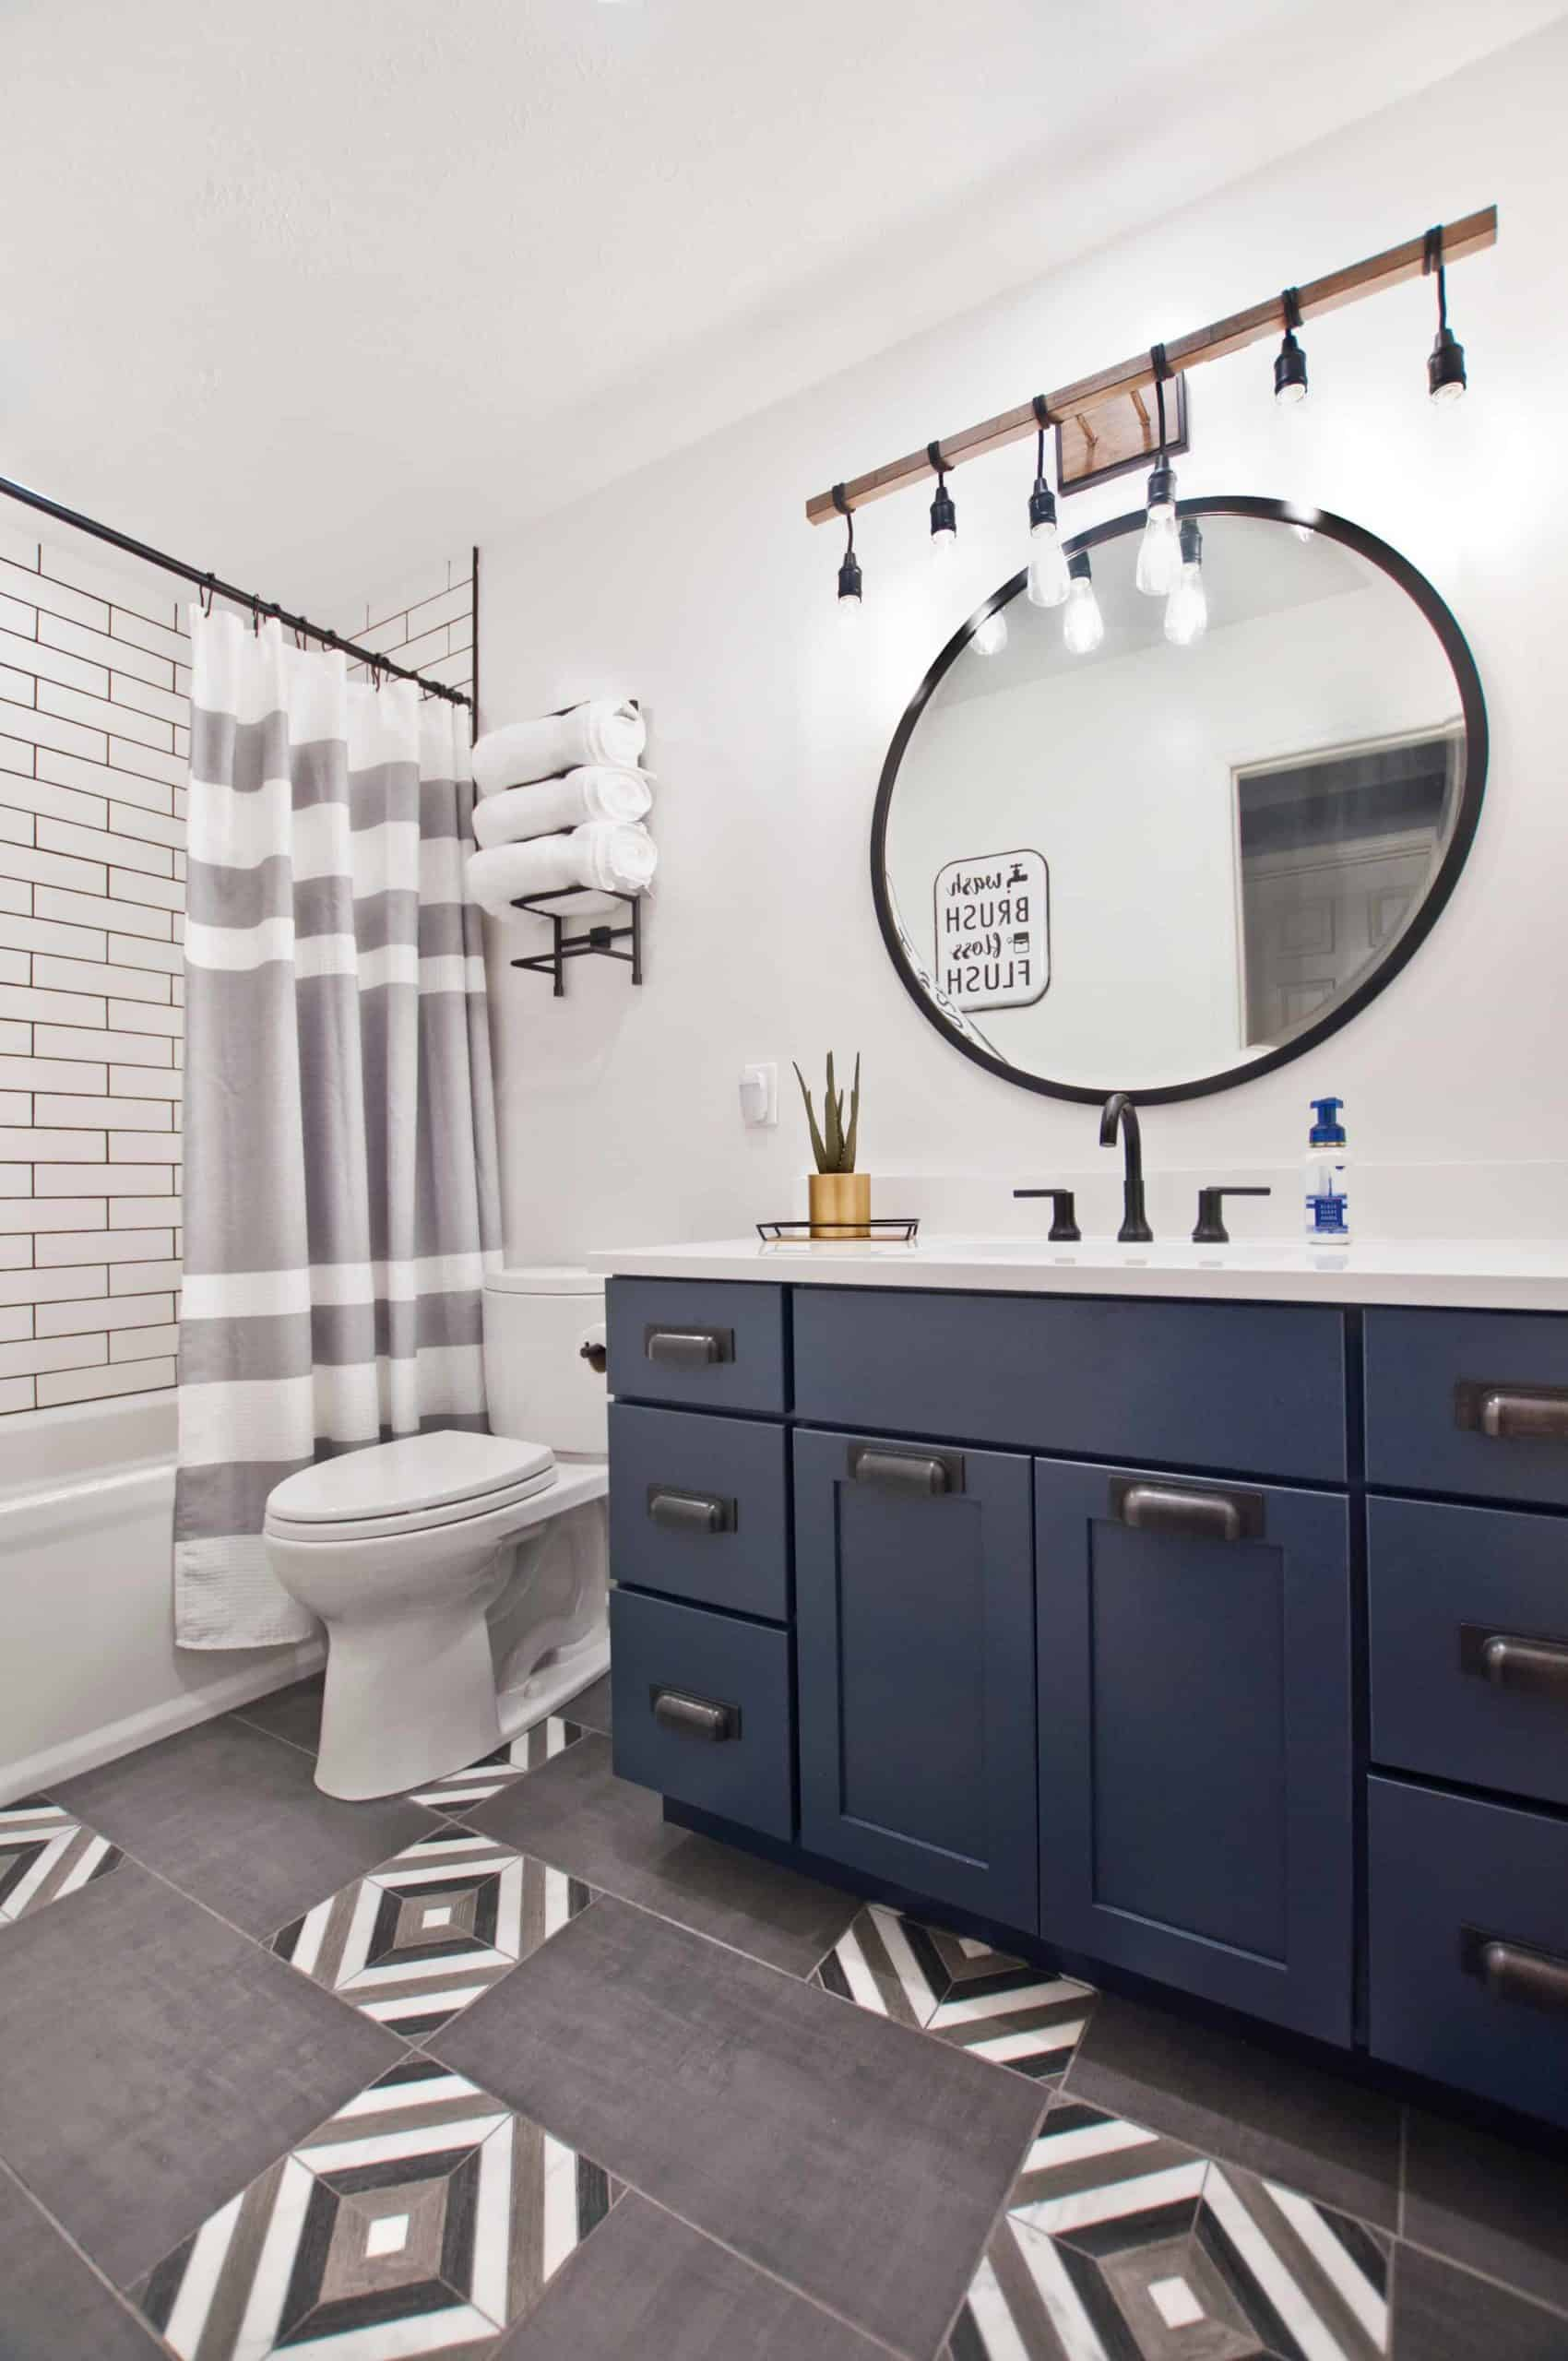 White walls, grey multi-colored tile floor, dark blue cabinets